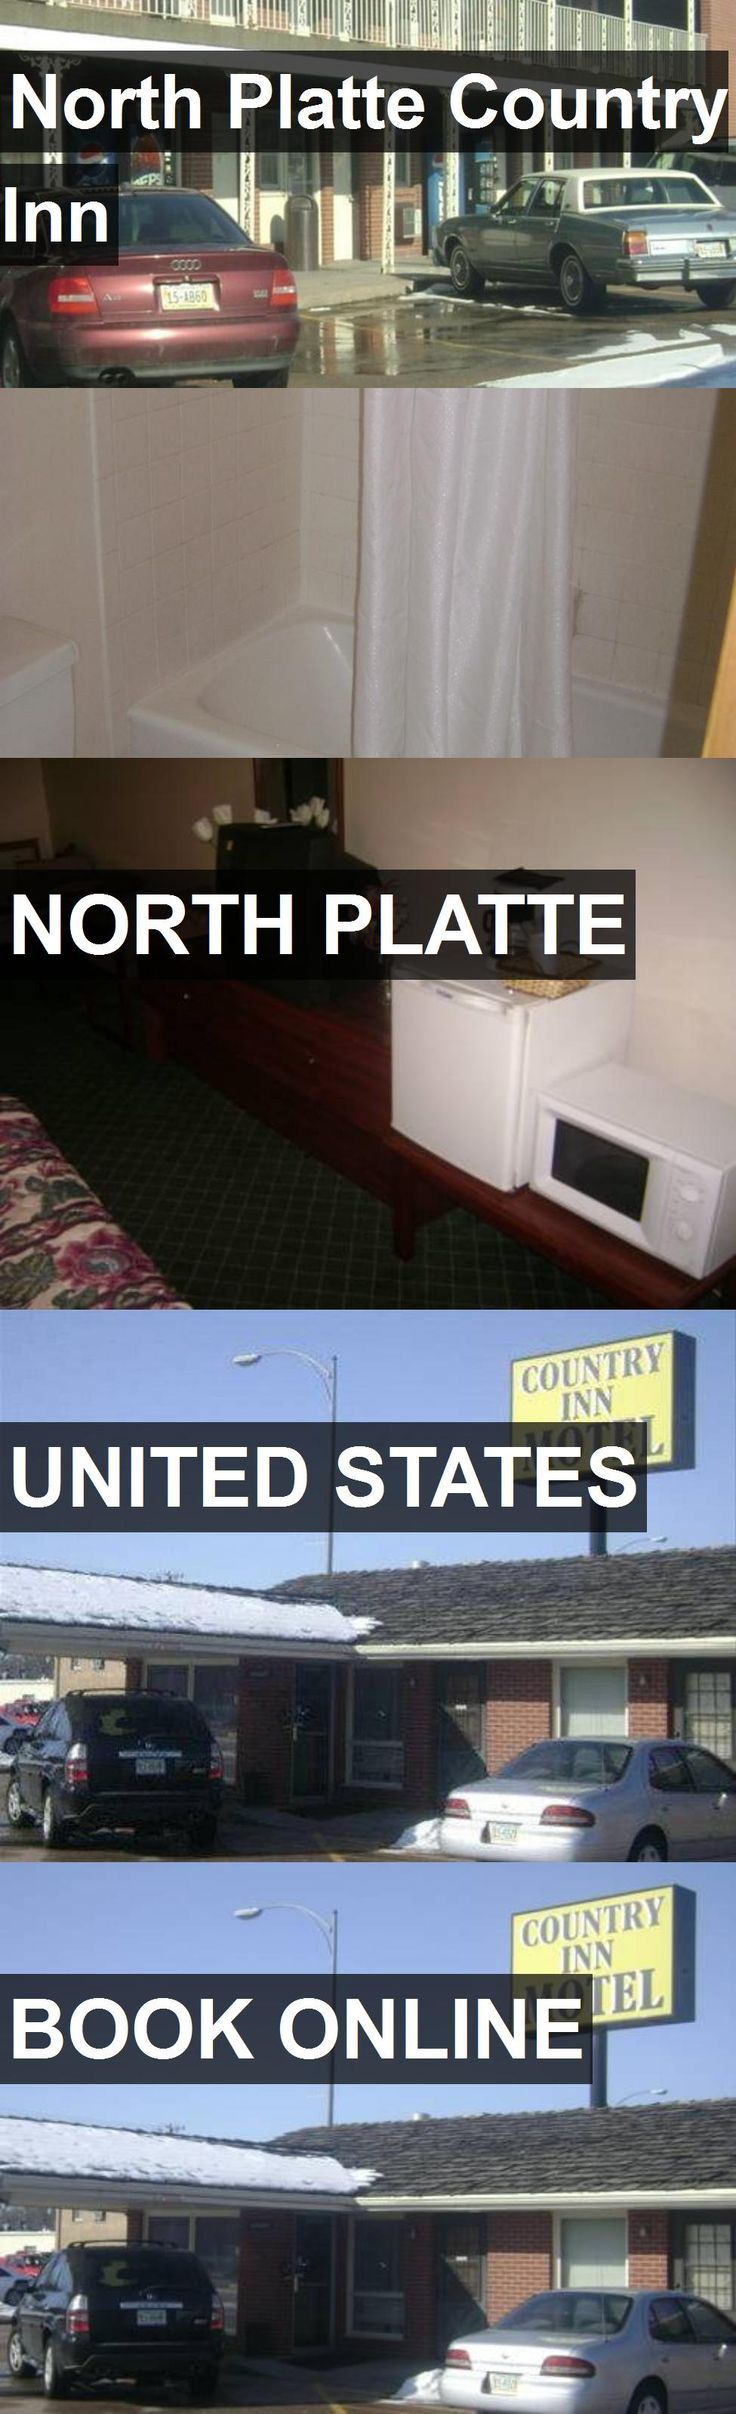 Hotel North Platte Country Inn in North Platte, United States. For more information, photos, reviews and best prices please follow the link. #UnitedStates #NorthPlatte #travel #vacation #hotel